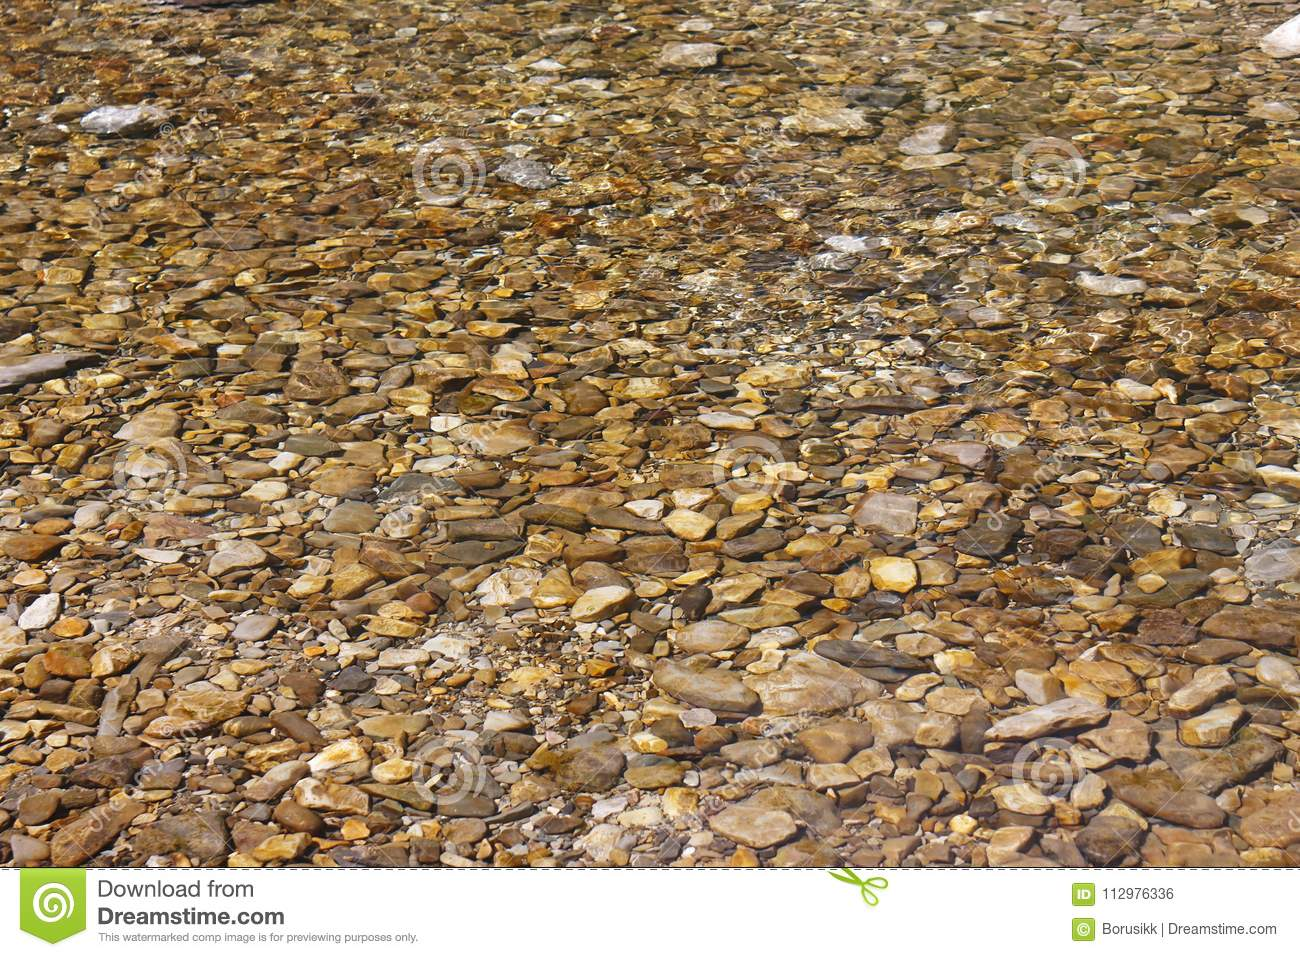 Beautiful sea pebbles under water on beach